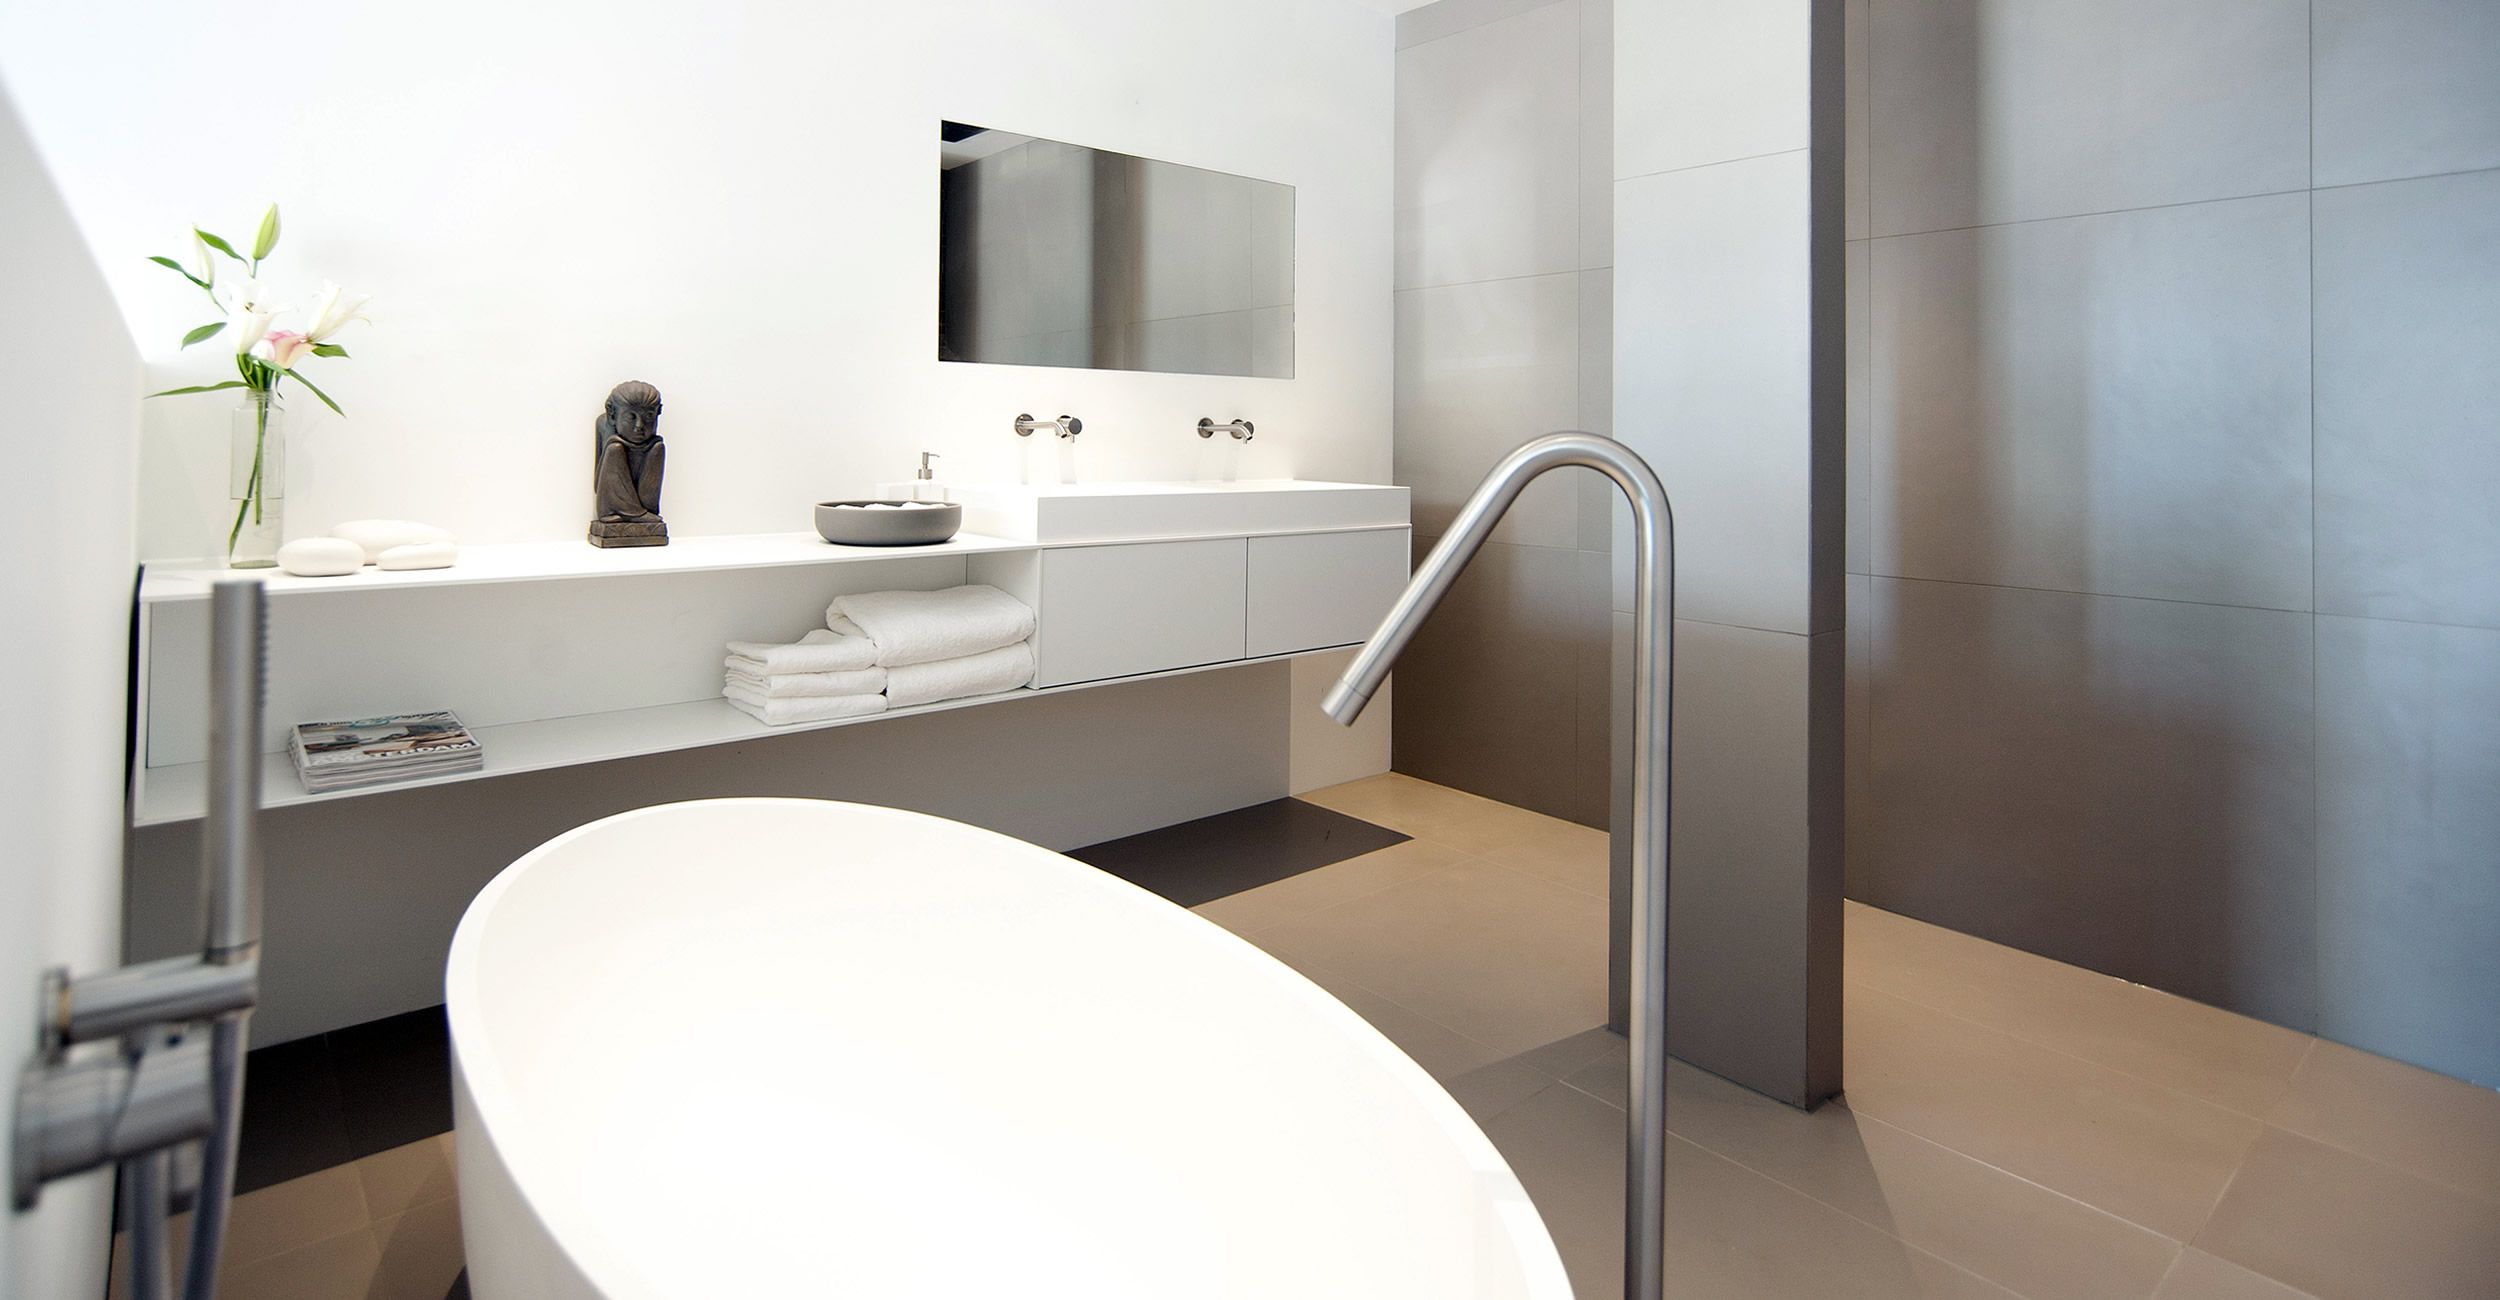 Stainless Steel Taps Faucets And Showers All On Our Webshop Stunning Exclusive Bathrooms Designs 2018